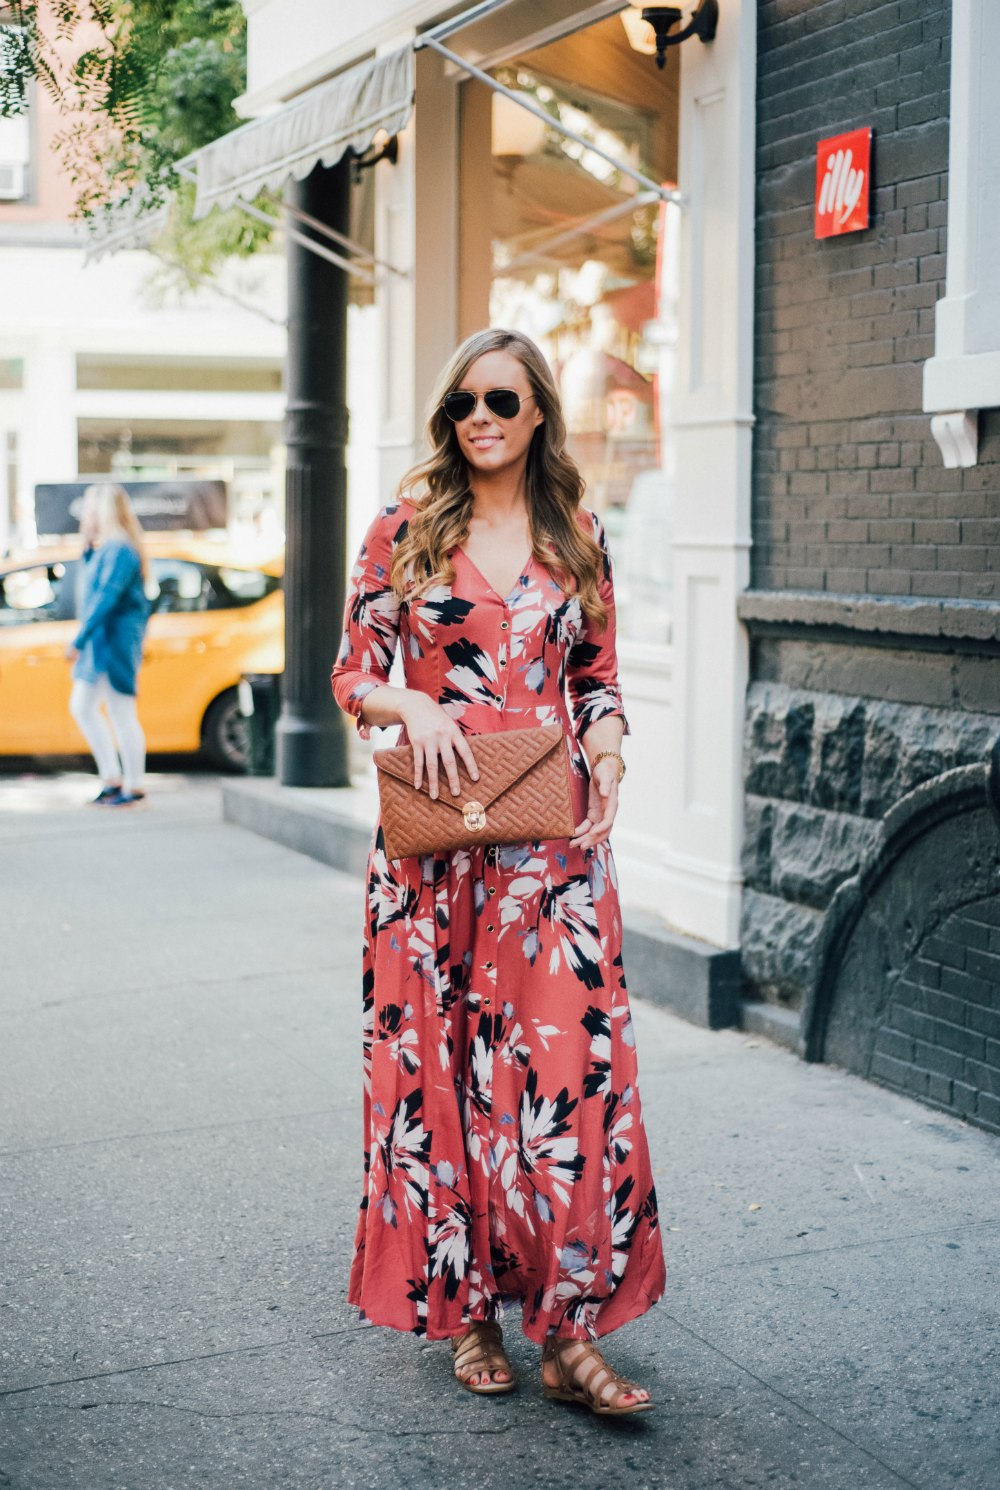 yumi kim maxi dress new york spring outfit soho lauren slade style elixir fashion blog 2 | Summer Floral Maxi Dress in Soho featured by popular US blogger Style Elixir